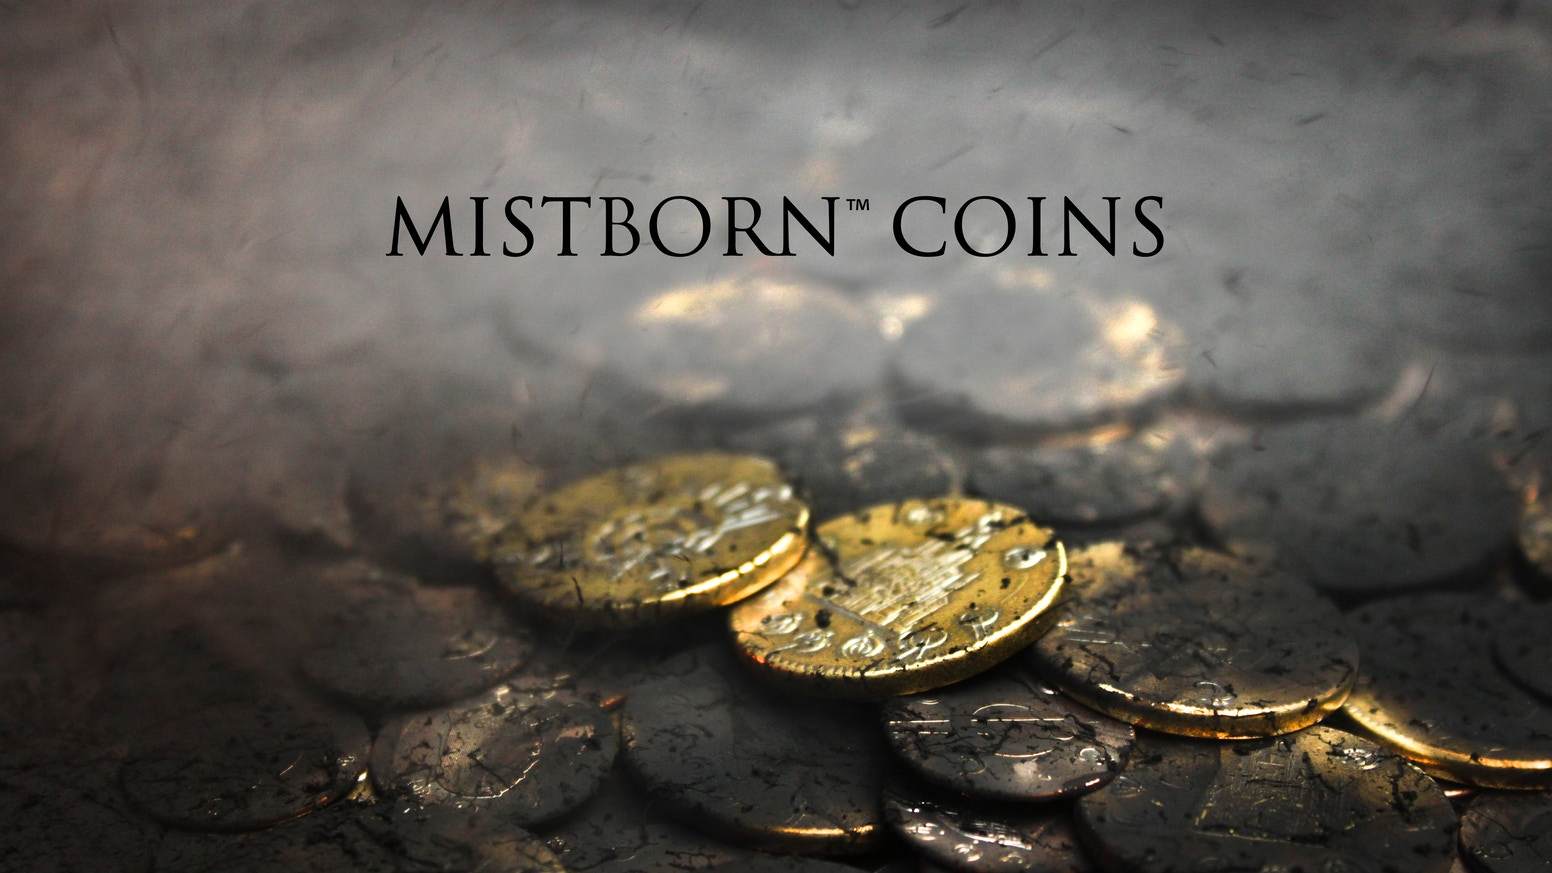 Collectible coins based on Brandon Sanderson's Mistborn series of novels. Boxings and Clips struck in solid brass and copper.